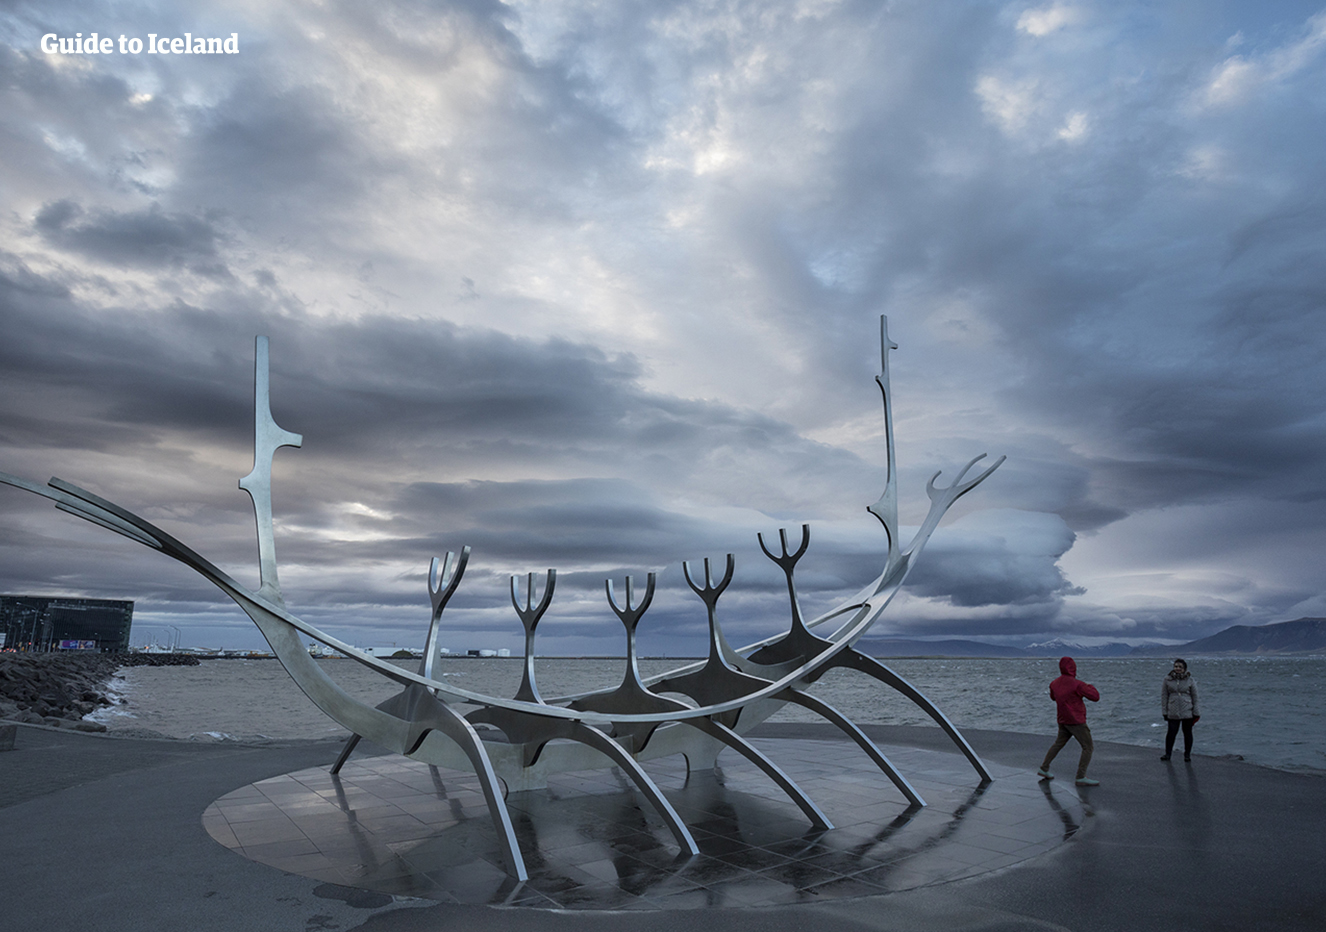 The Sun Voyager Monument on the shoreline of Reykjavik.